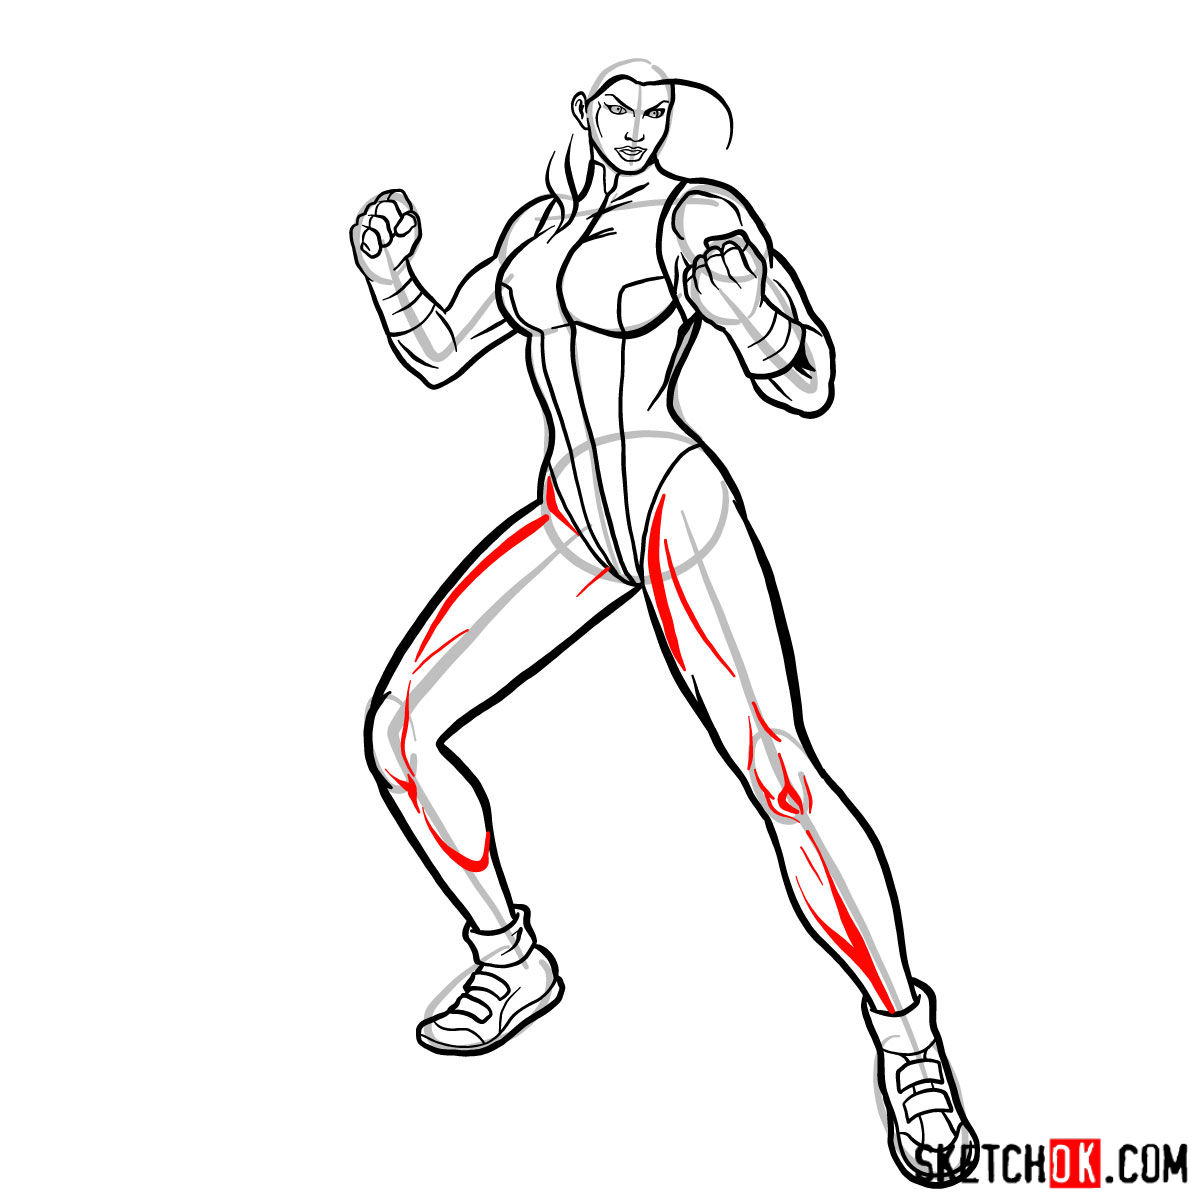 How to draw She-Hulk (Jennifer Walters) from Marvel - step 12